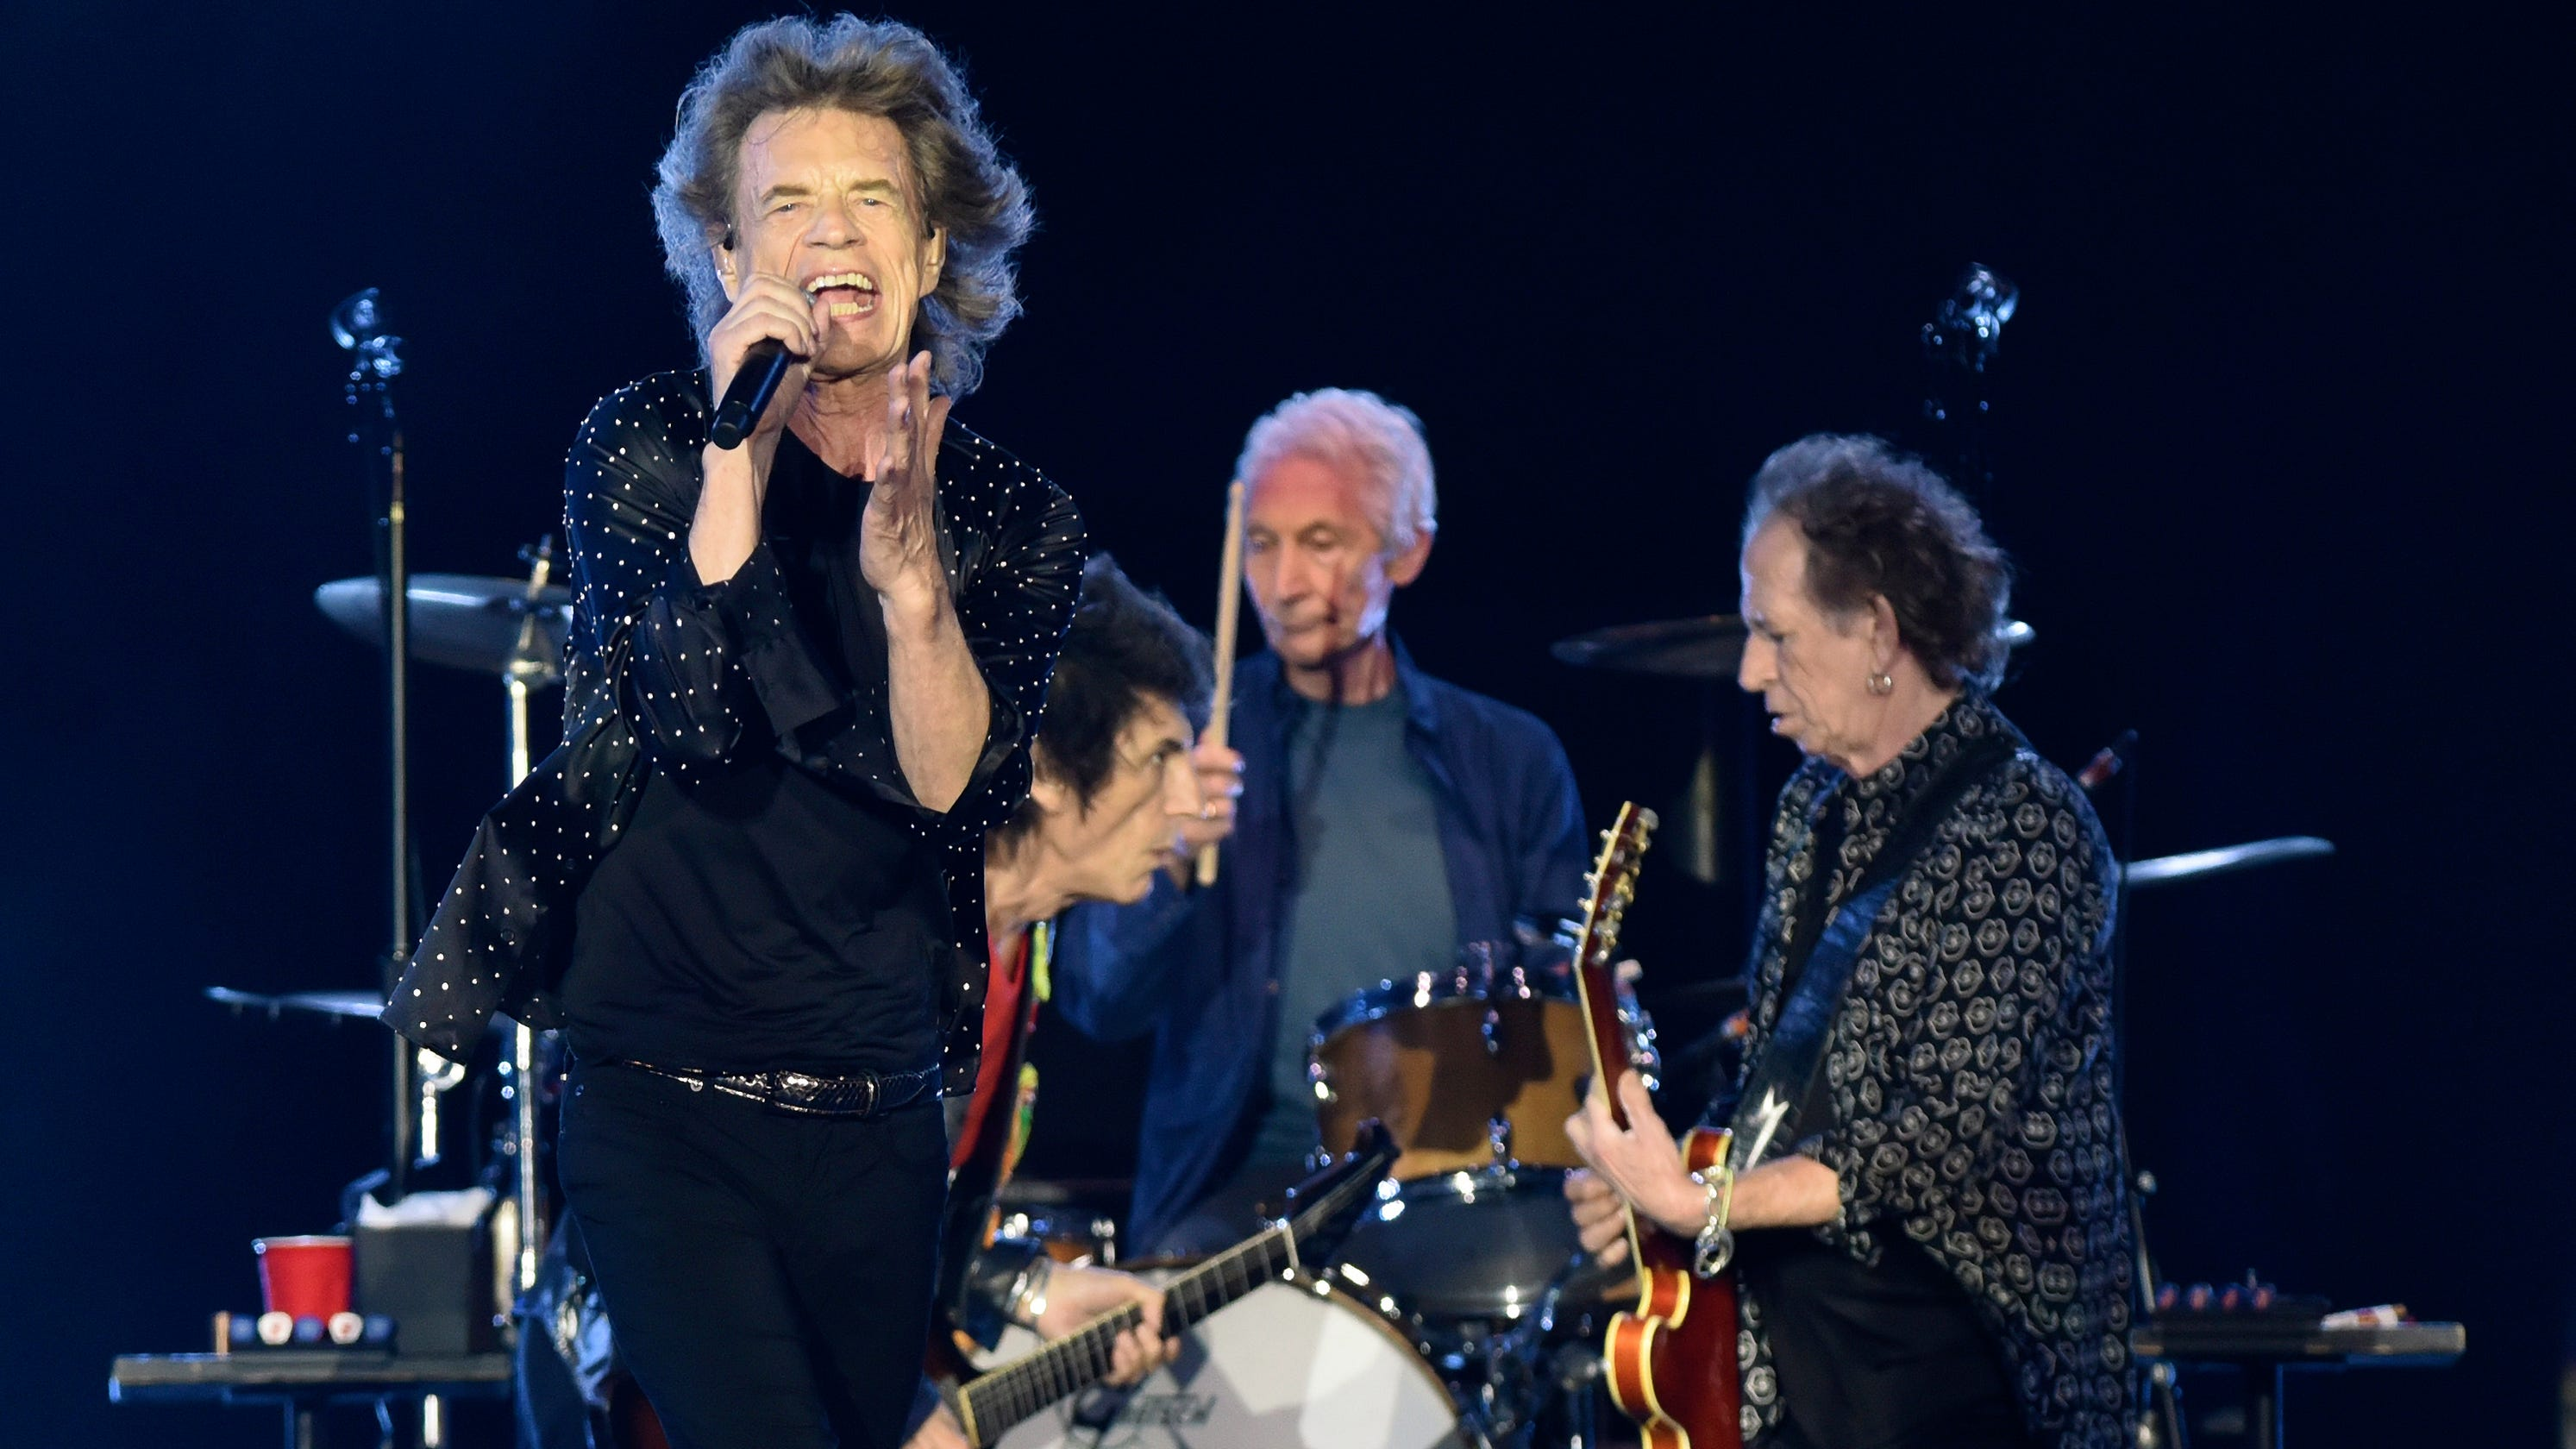 Rolling Stones at MetLife Stadium: NJ Transit warns of long